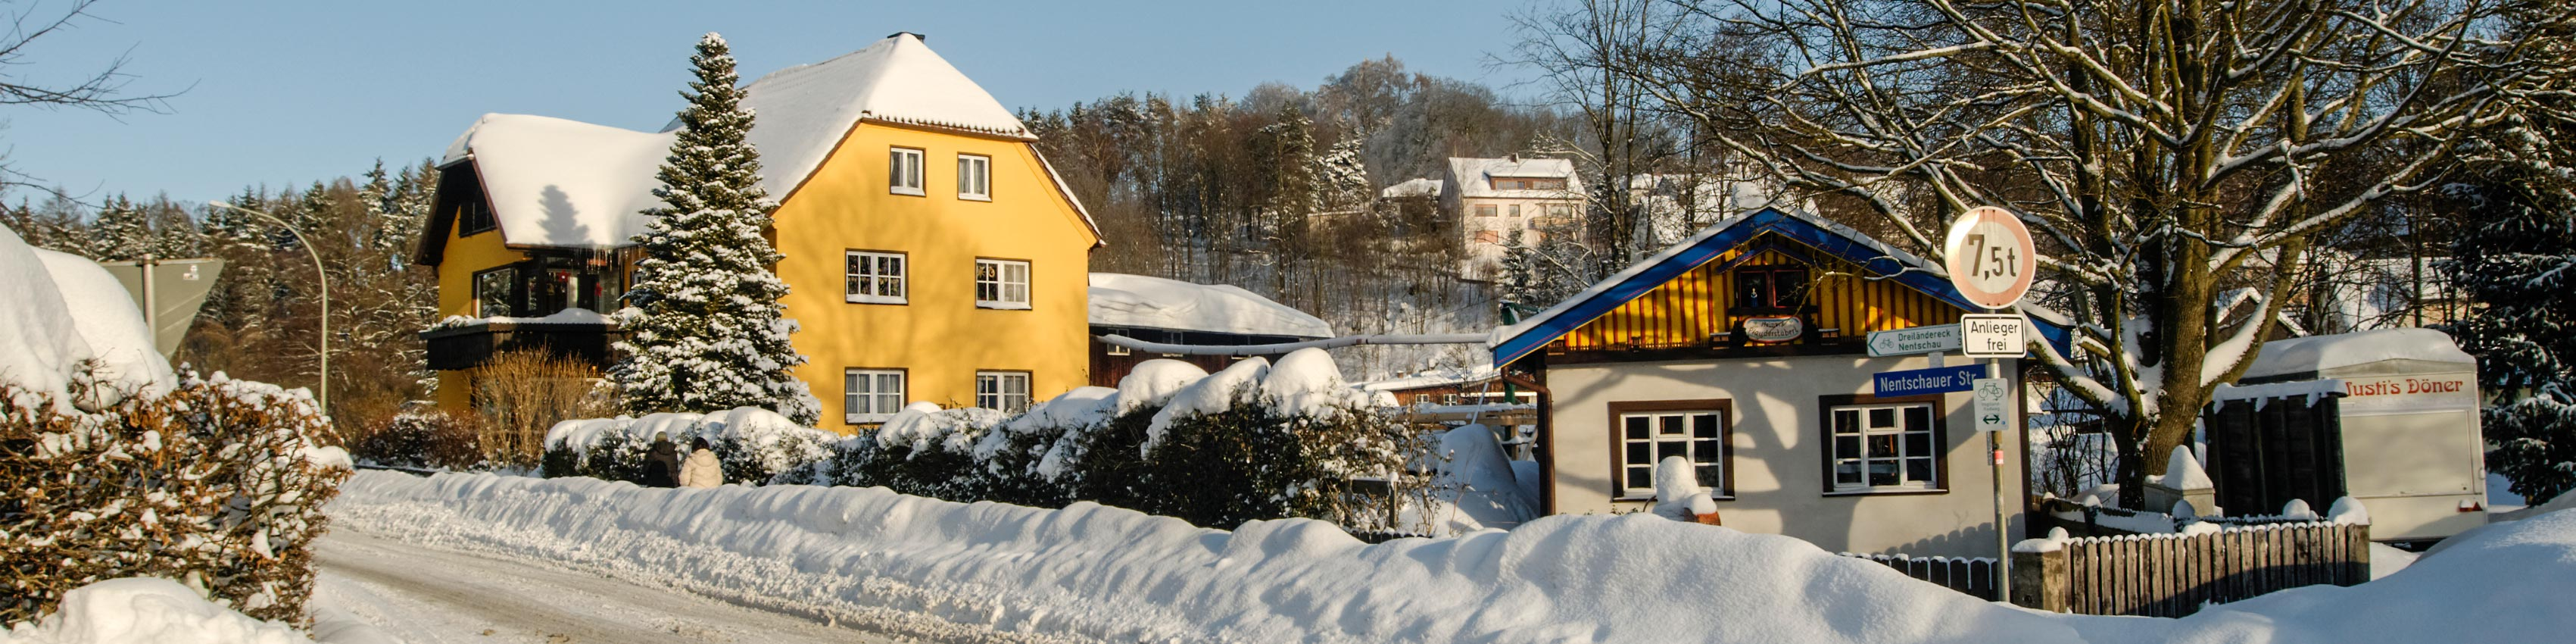 Header Winter Regnitzlosau 226